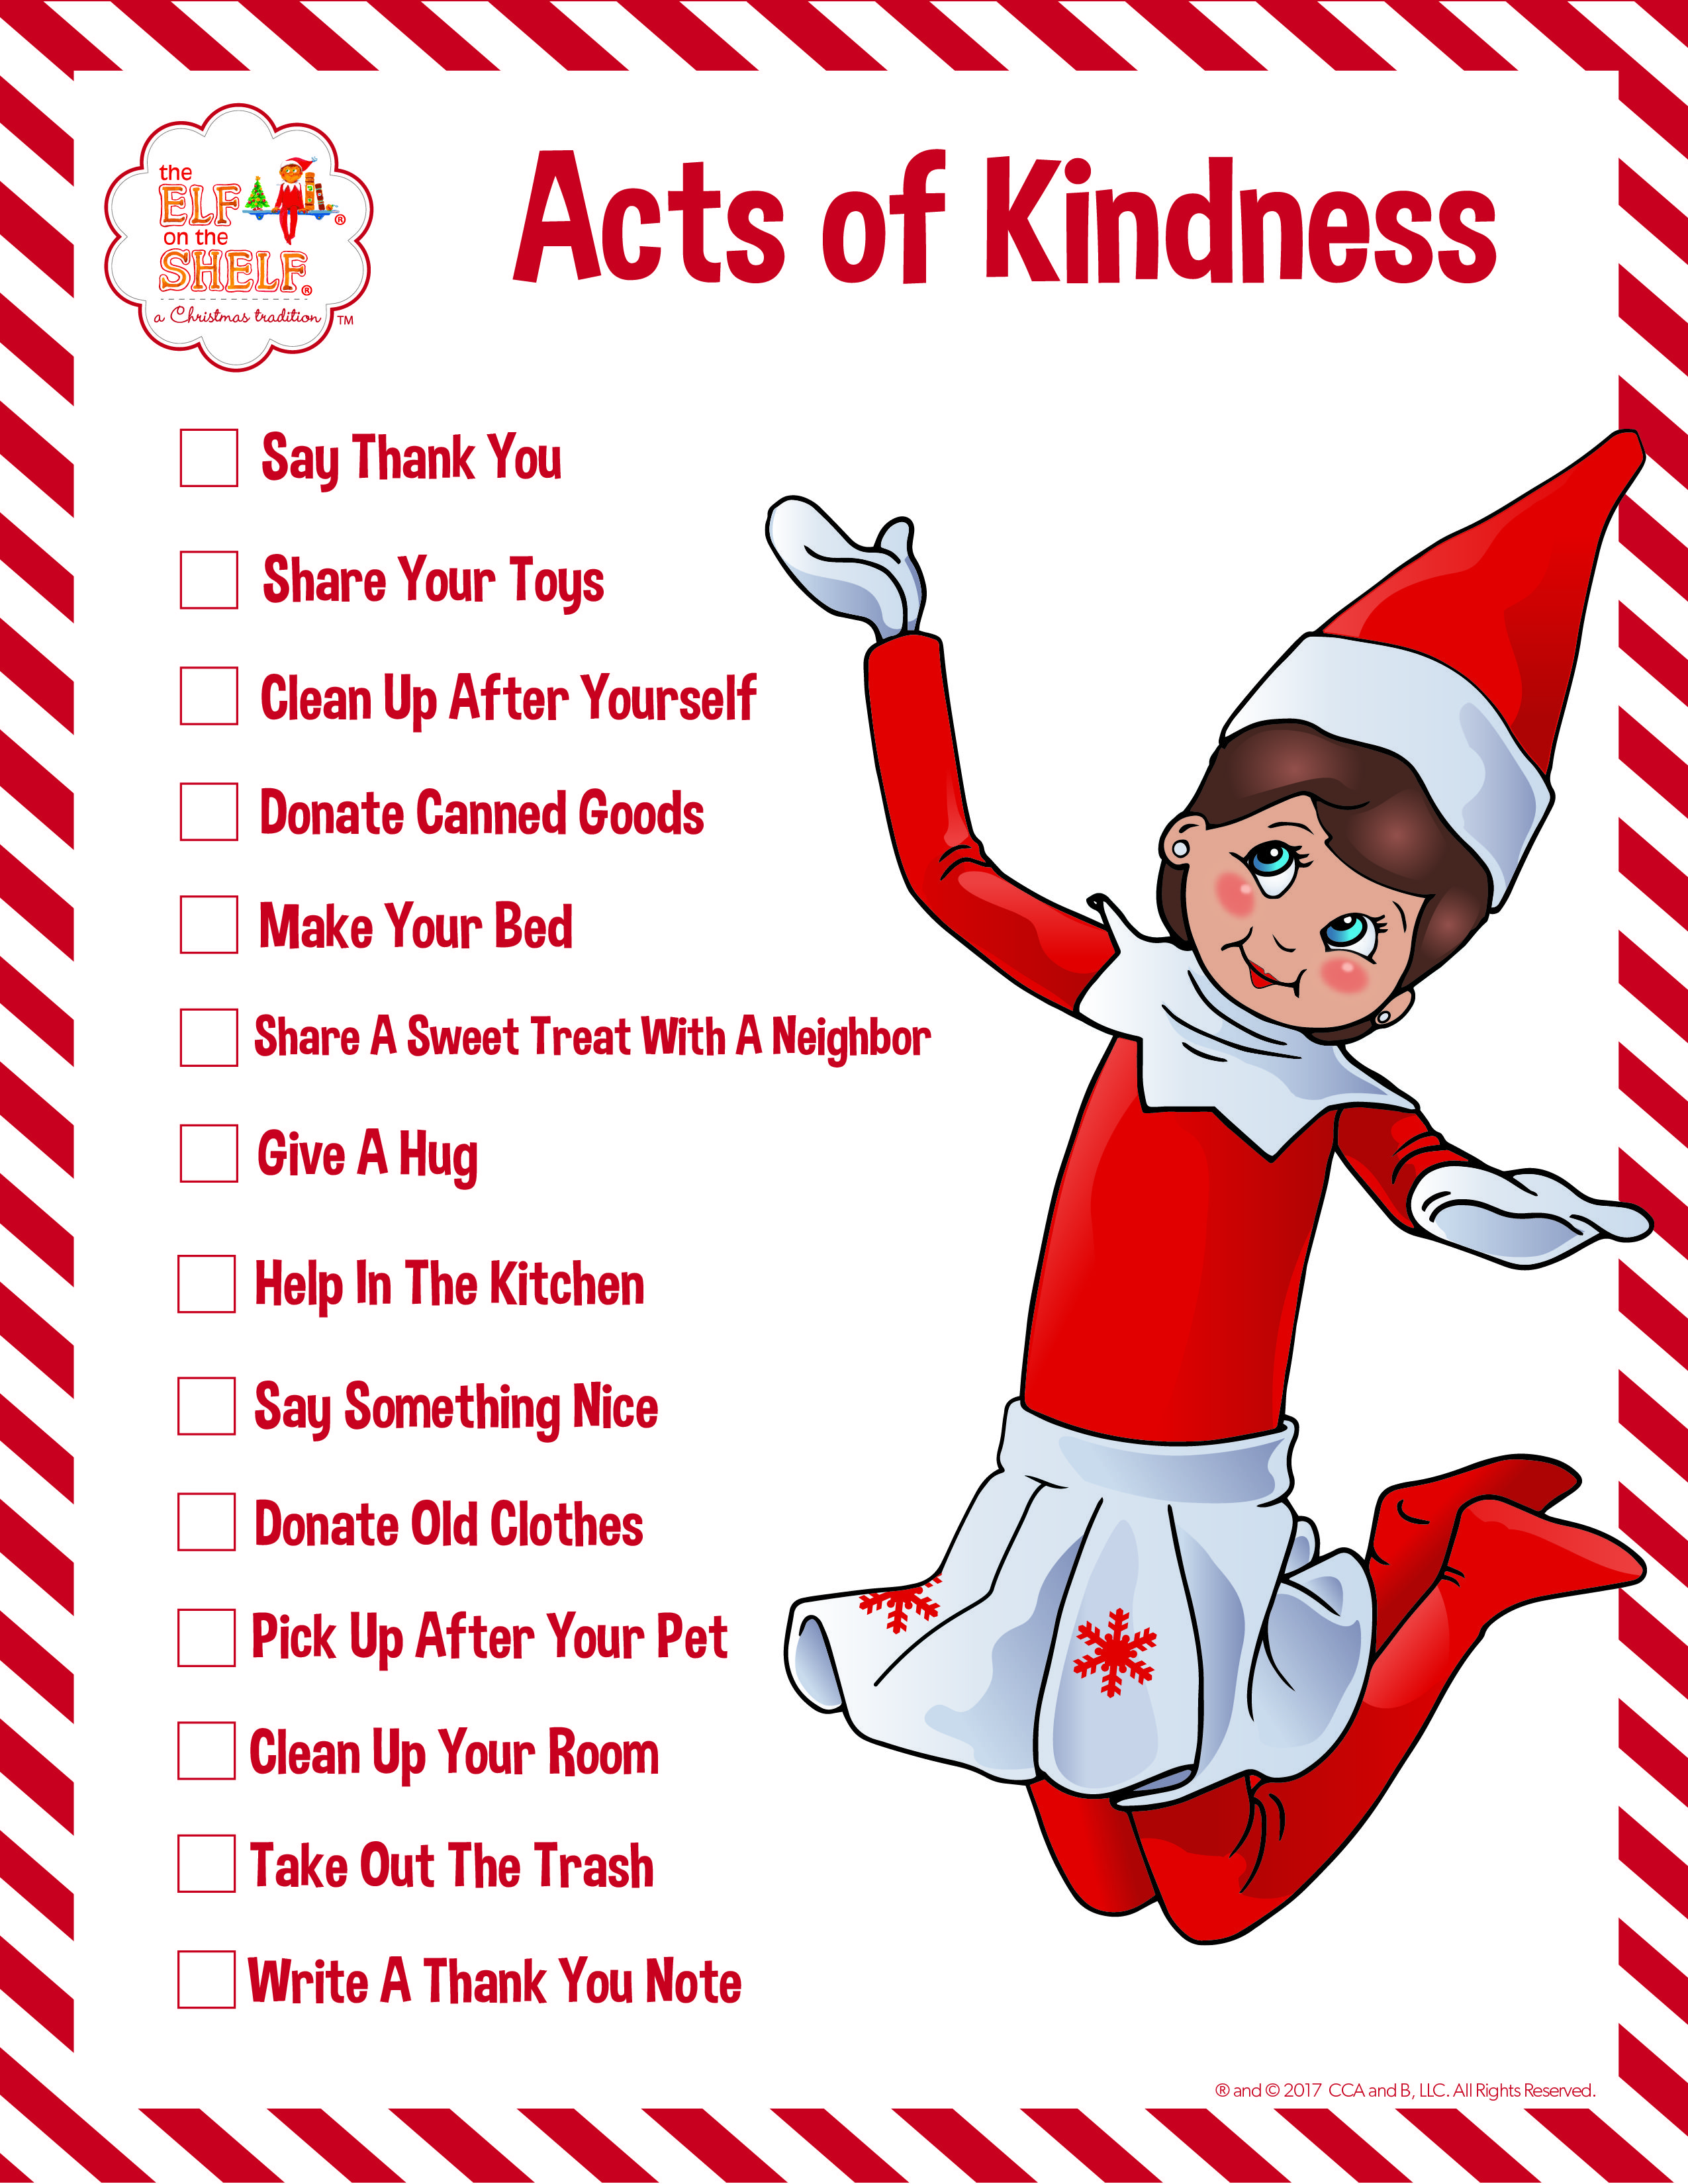 Random Acts Of Kindness List For Kids Printable Activities Kind Deeds Lists For Children Good Deed Elf Fun Elf On The Self Awesome Elf On The Shelf Ideas